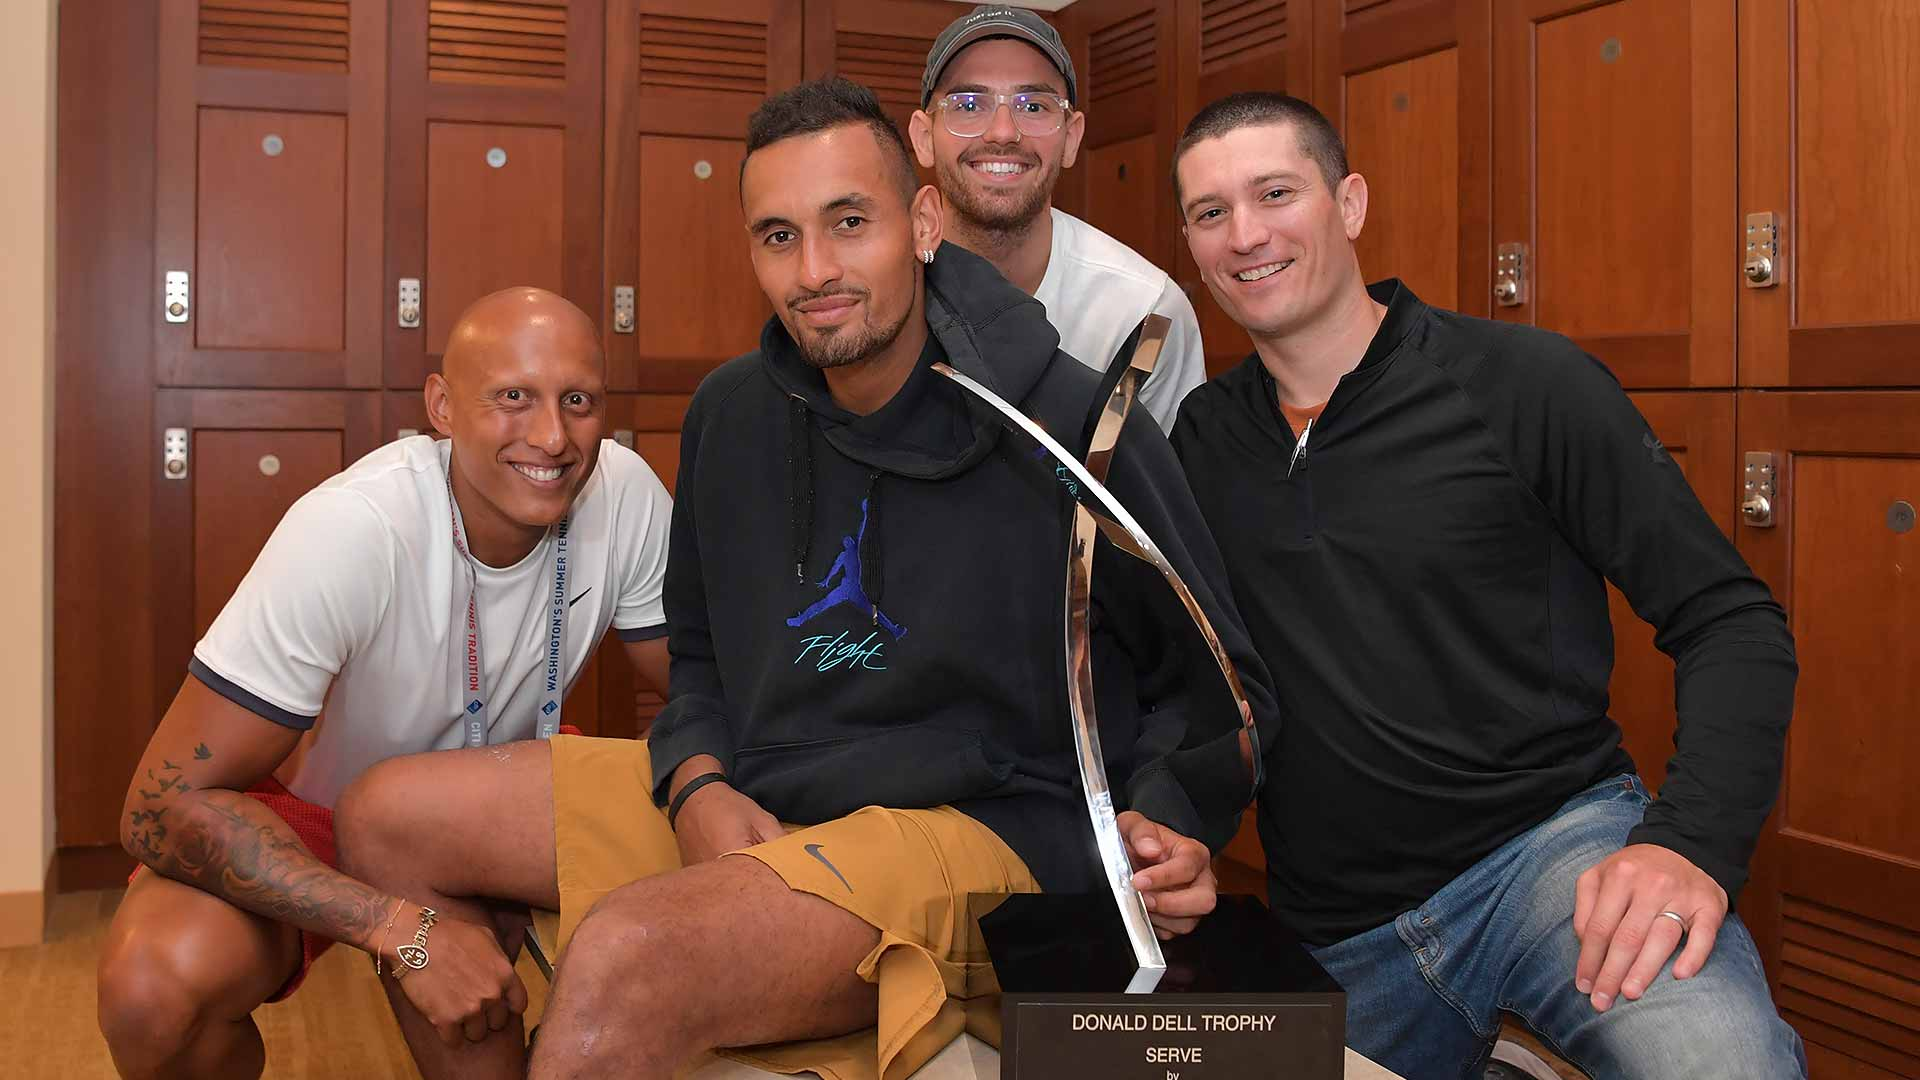 Nick Kyrgios celebrates his Citi Open title with his team on Sunday in Washington, D.C.